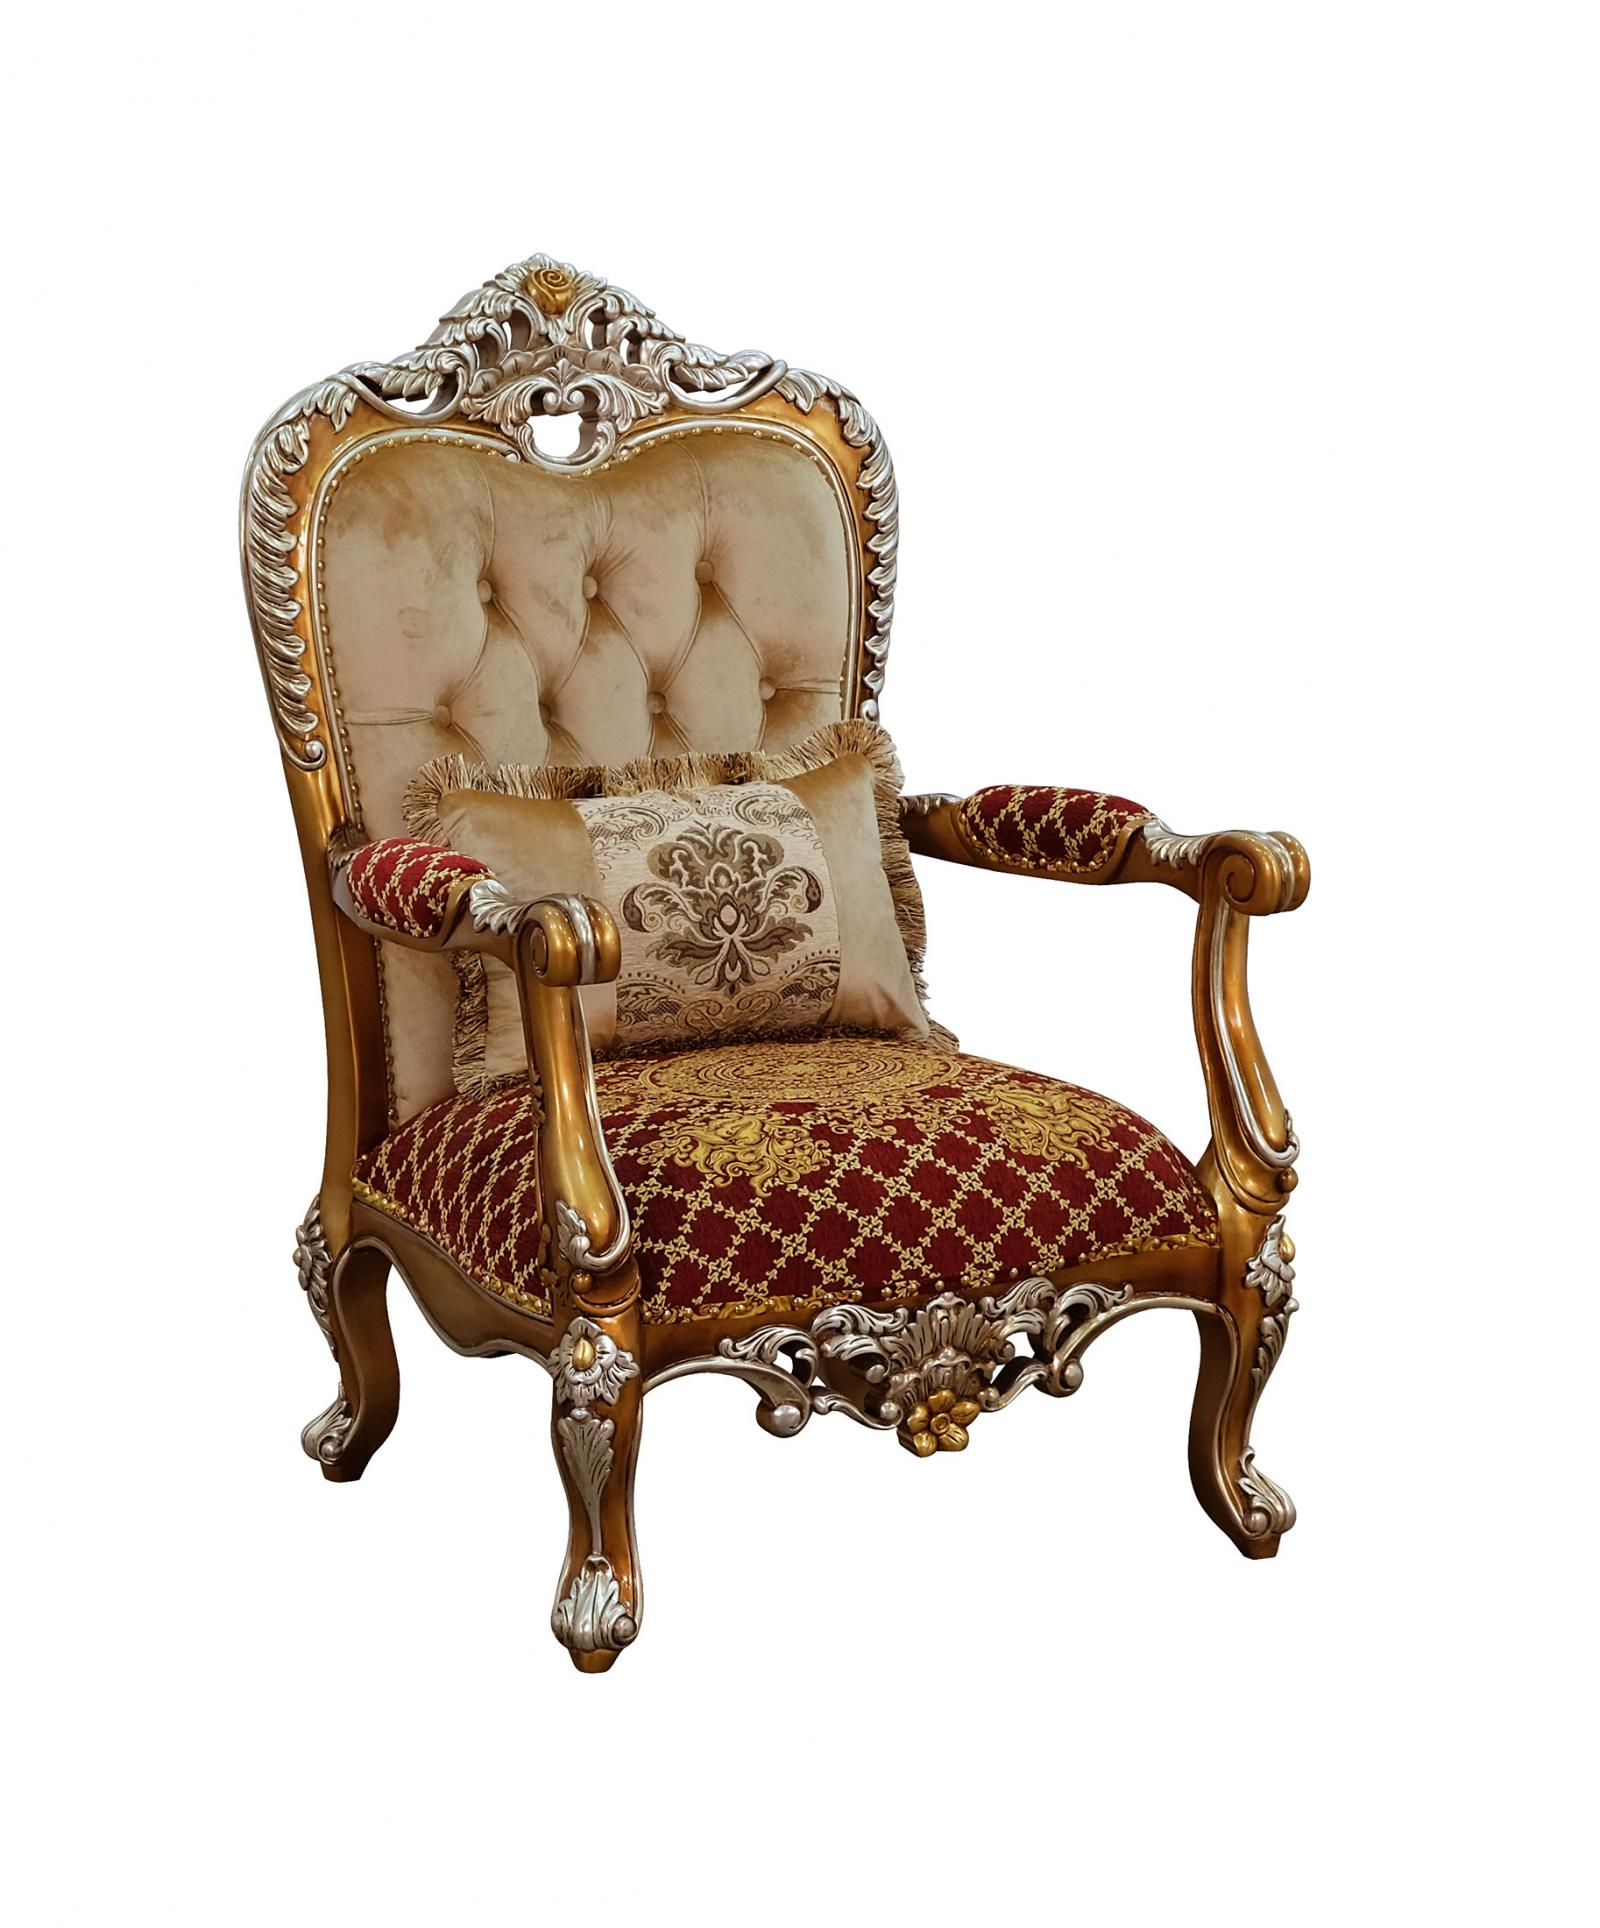 Classic  Traditional Gold  Sand   Red Wood  Solid Hardwood and Fabric Arm Chair EUROPEAN FURNITURE 35554-C